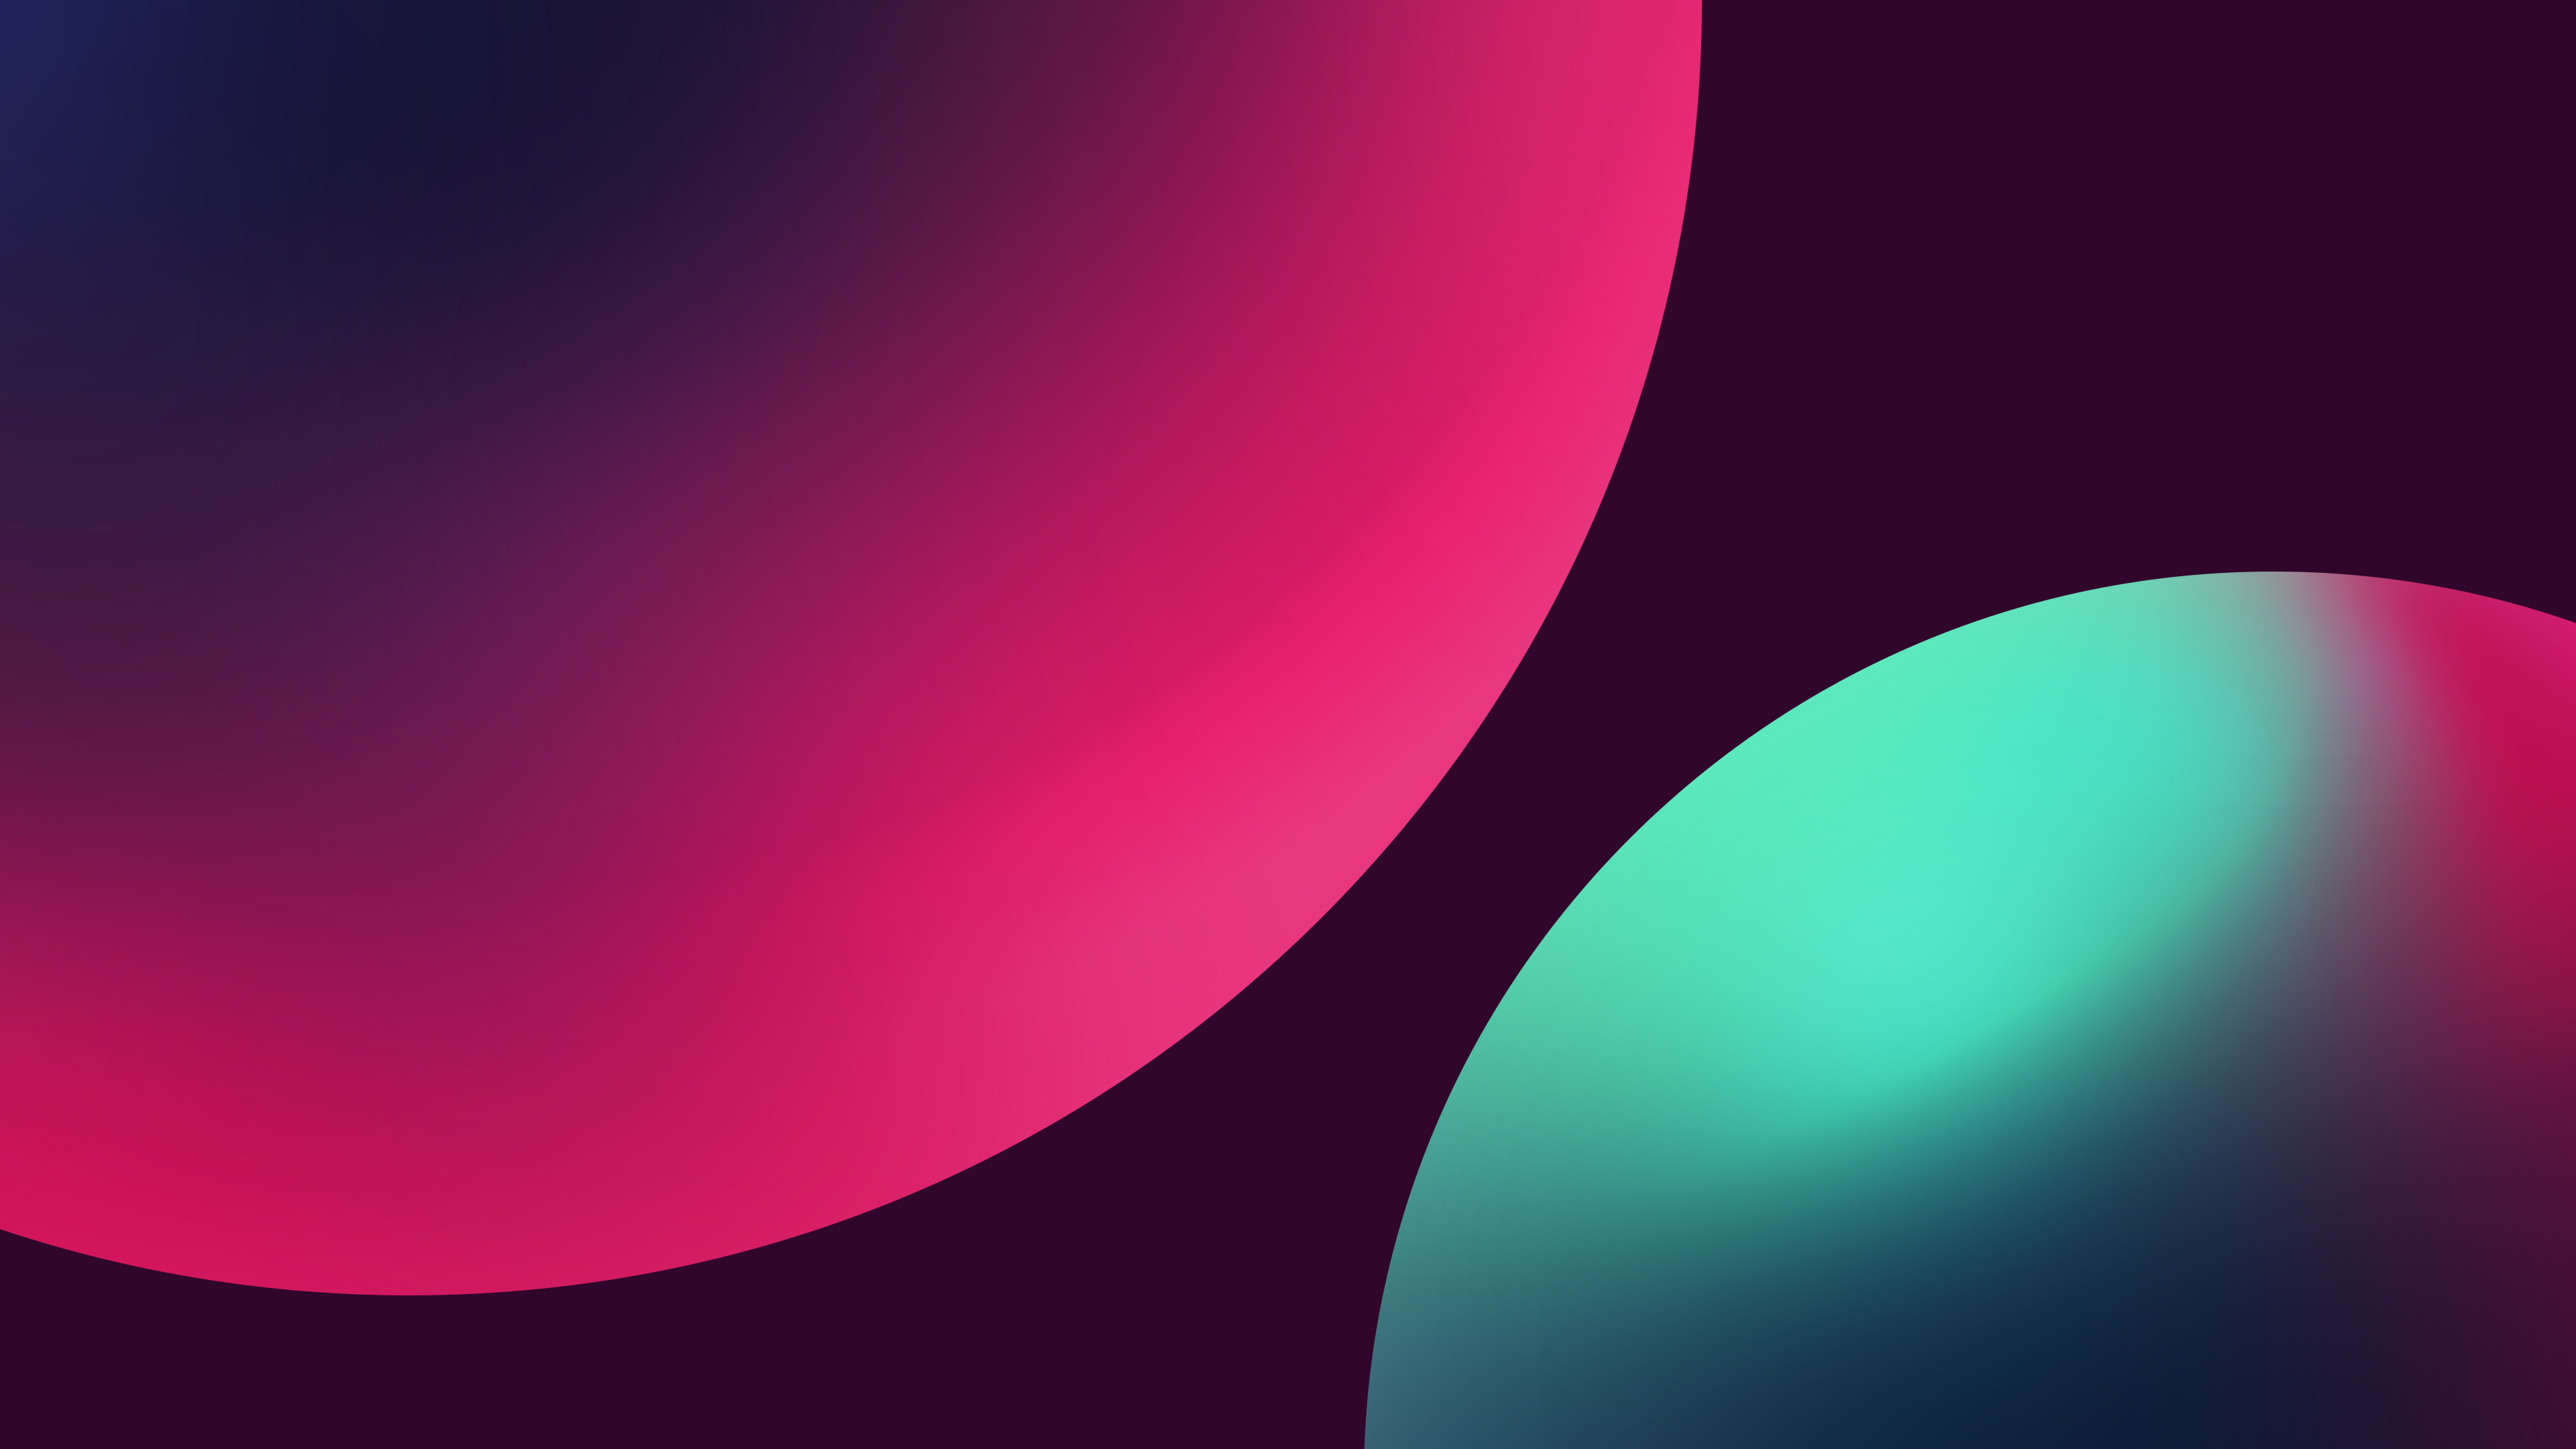 3840x2160 I recreated one of the wallpapers from Opera browser ...